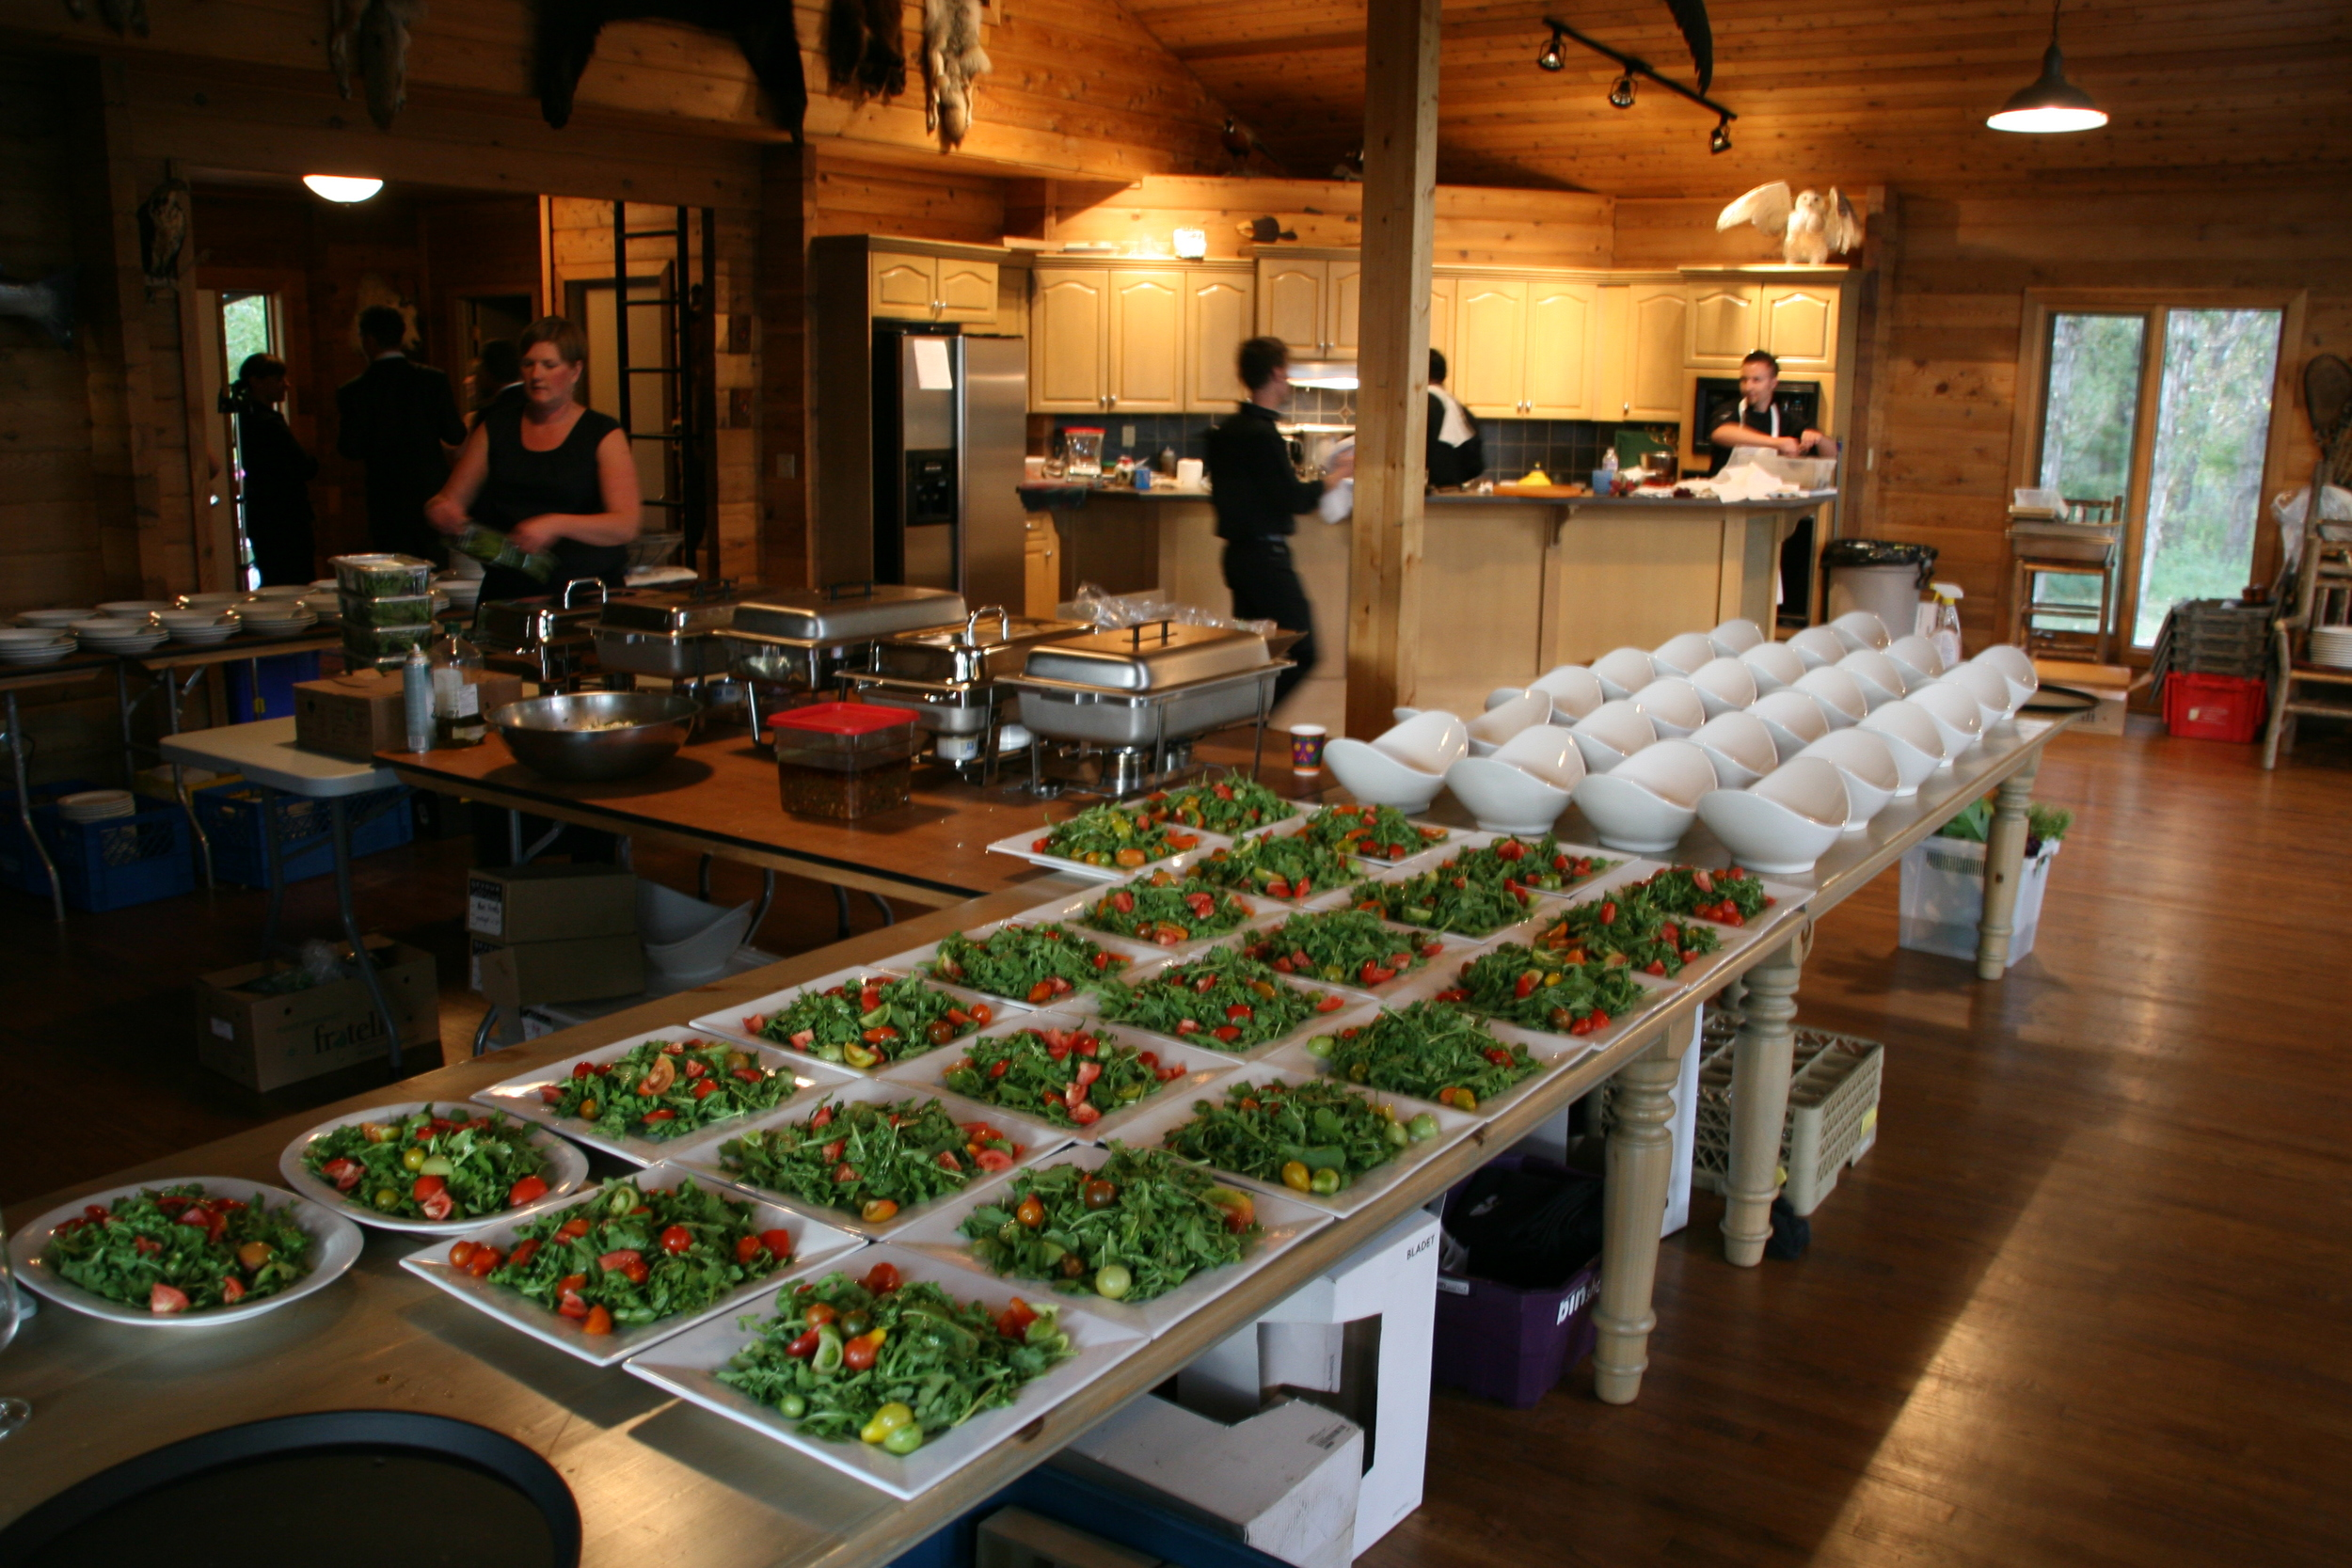 No kitchen? No problem. These platters are ready for a family-style wedding for 180 guests .